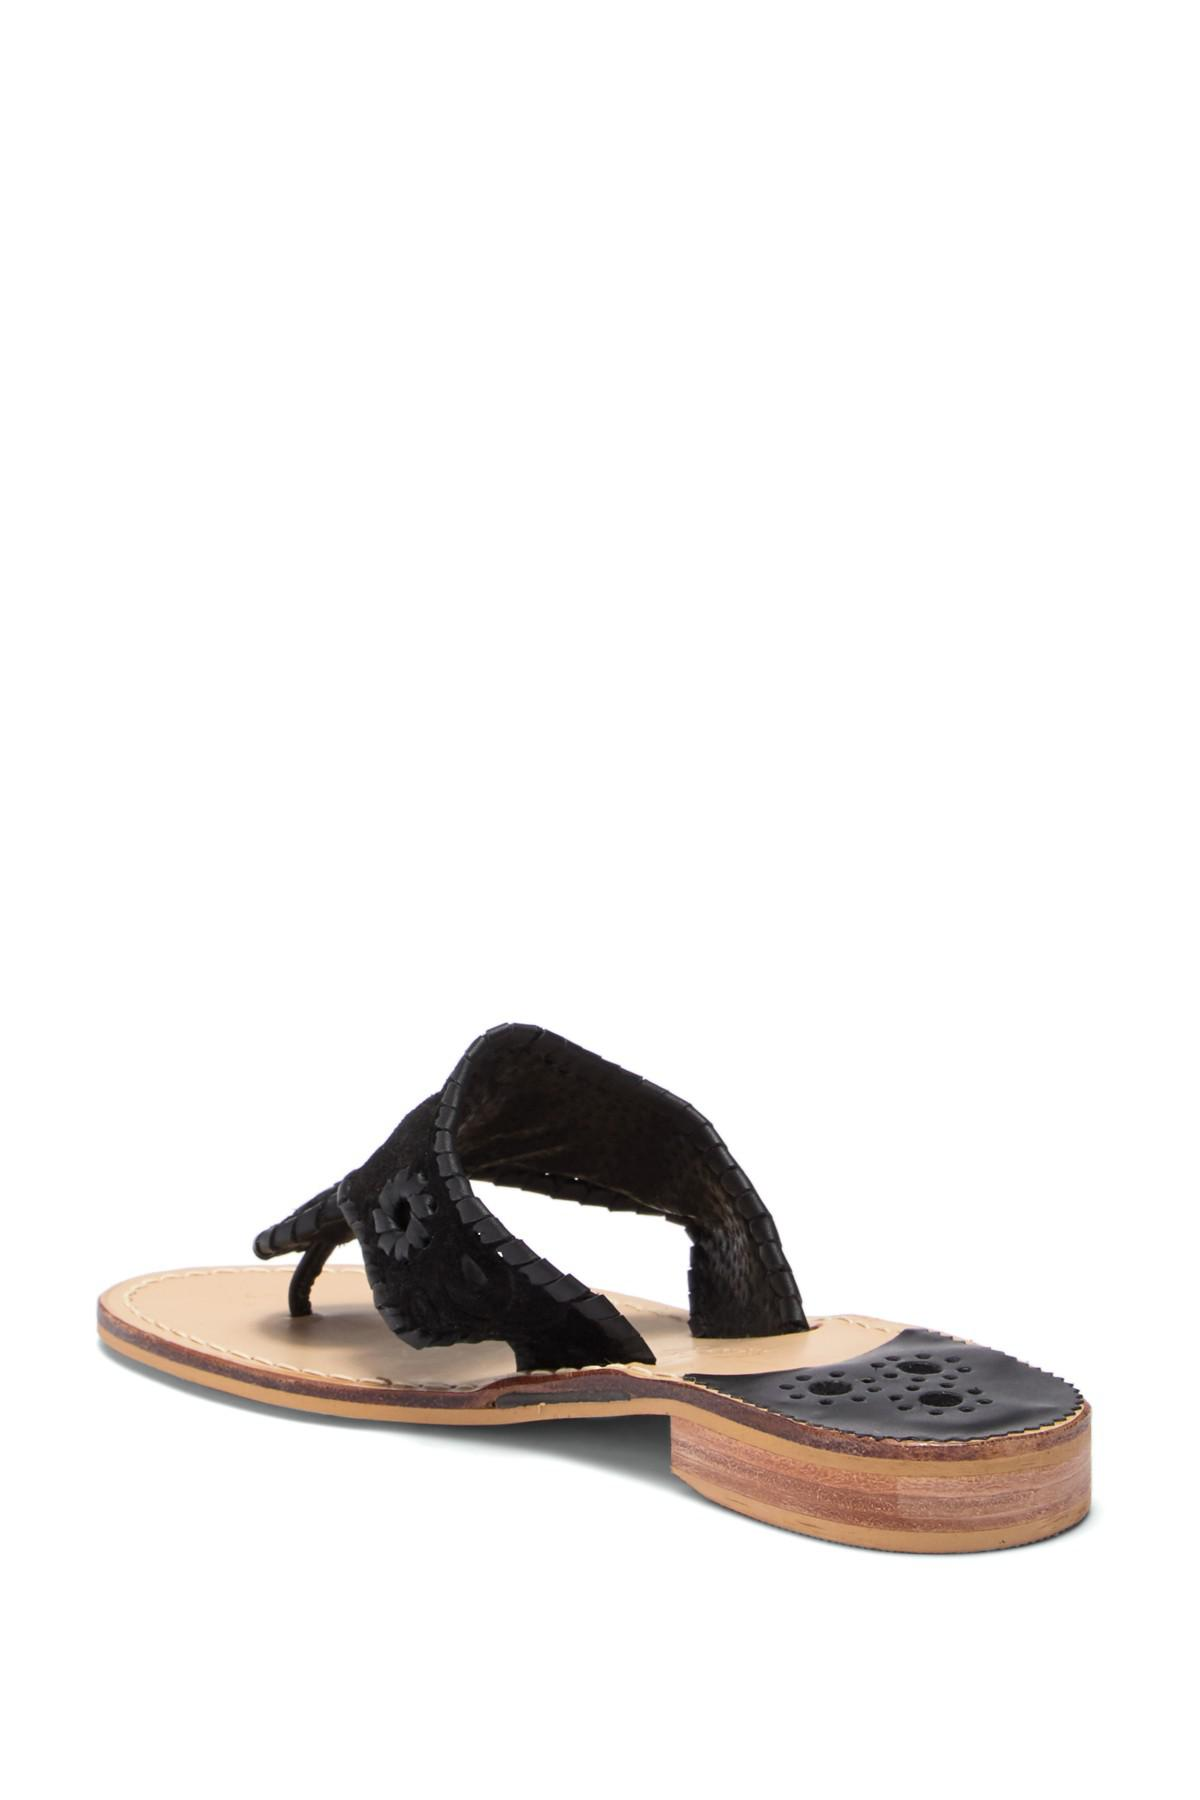 Jack Rogers Cloque Couture Thong Sandal fmY7m